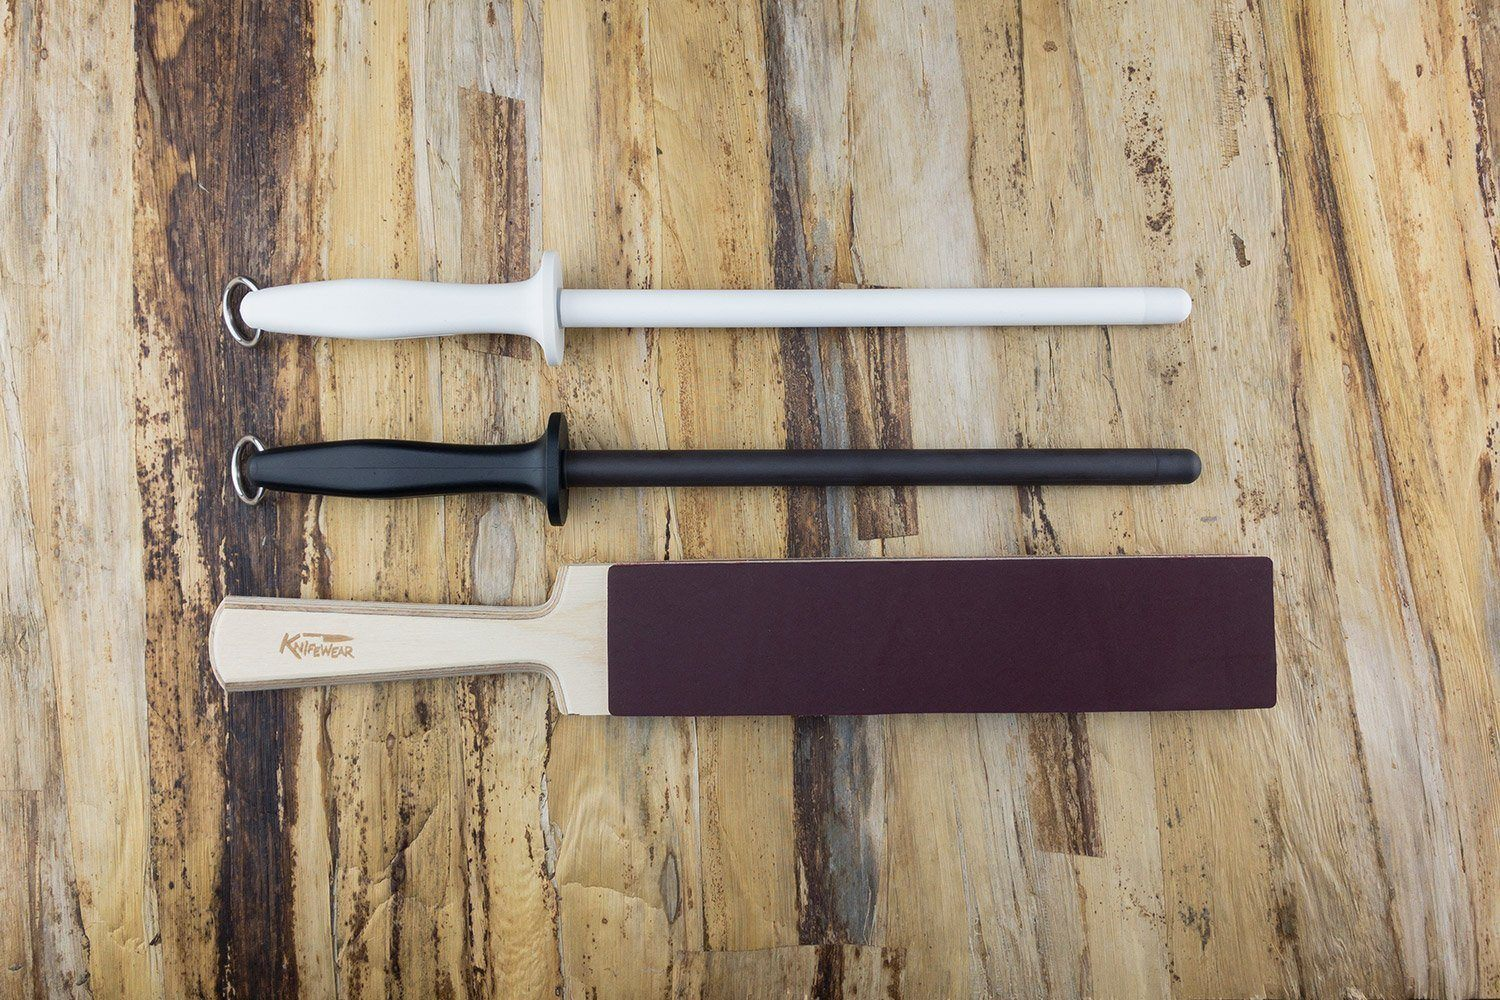 Professional Honing Kit - White and Black Rods and Leather/Suede Strop